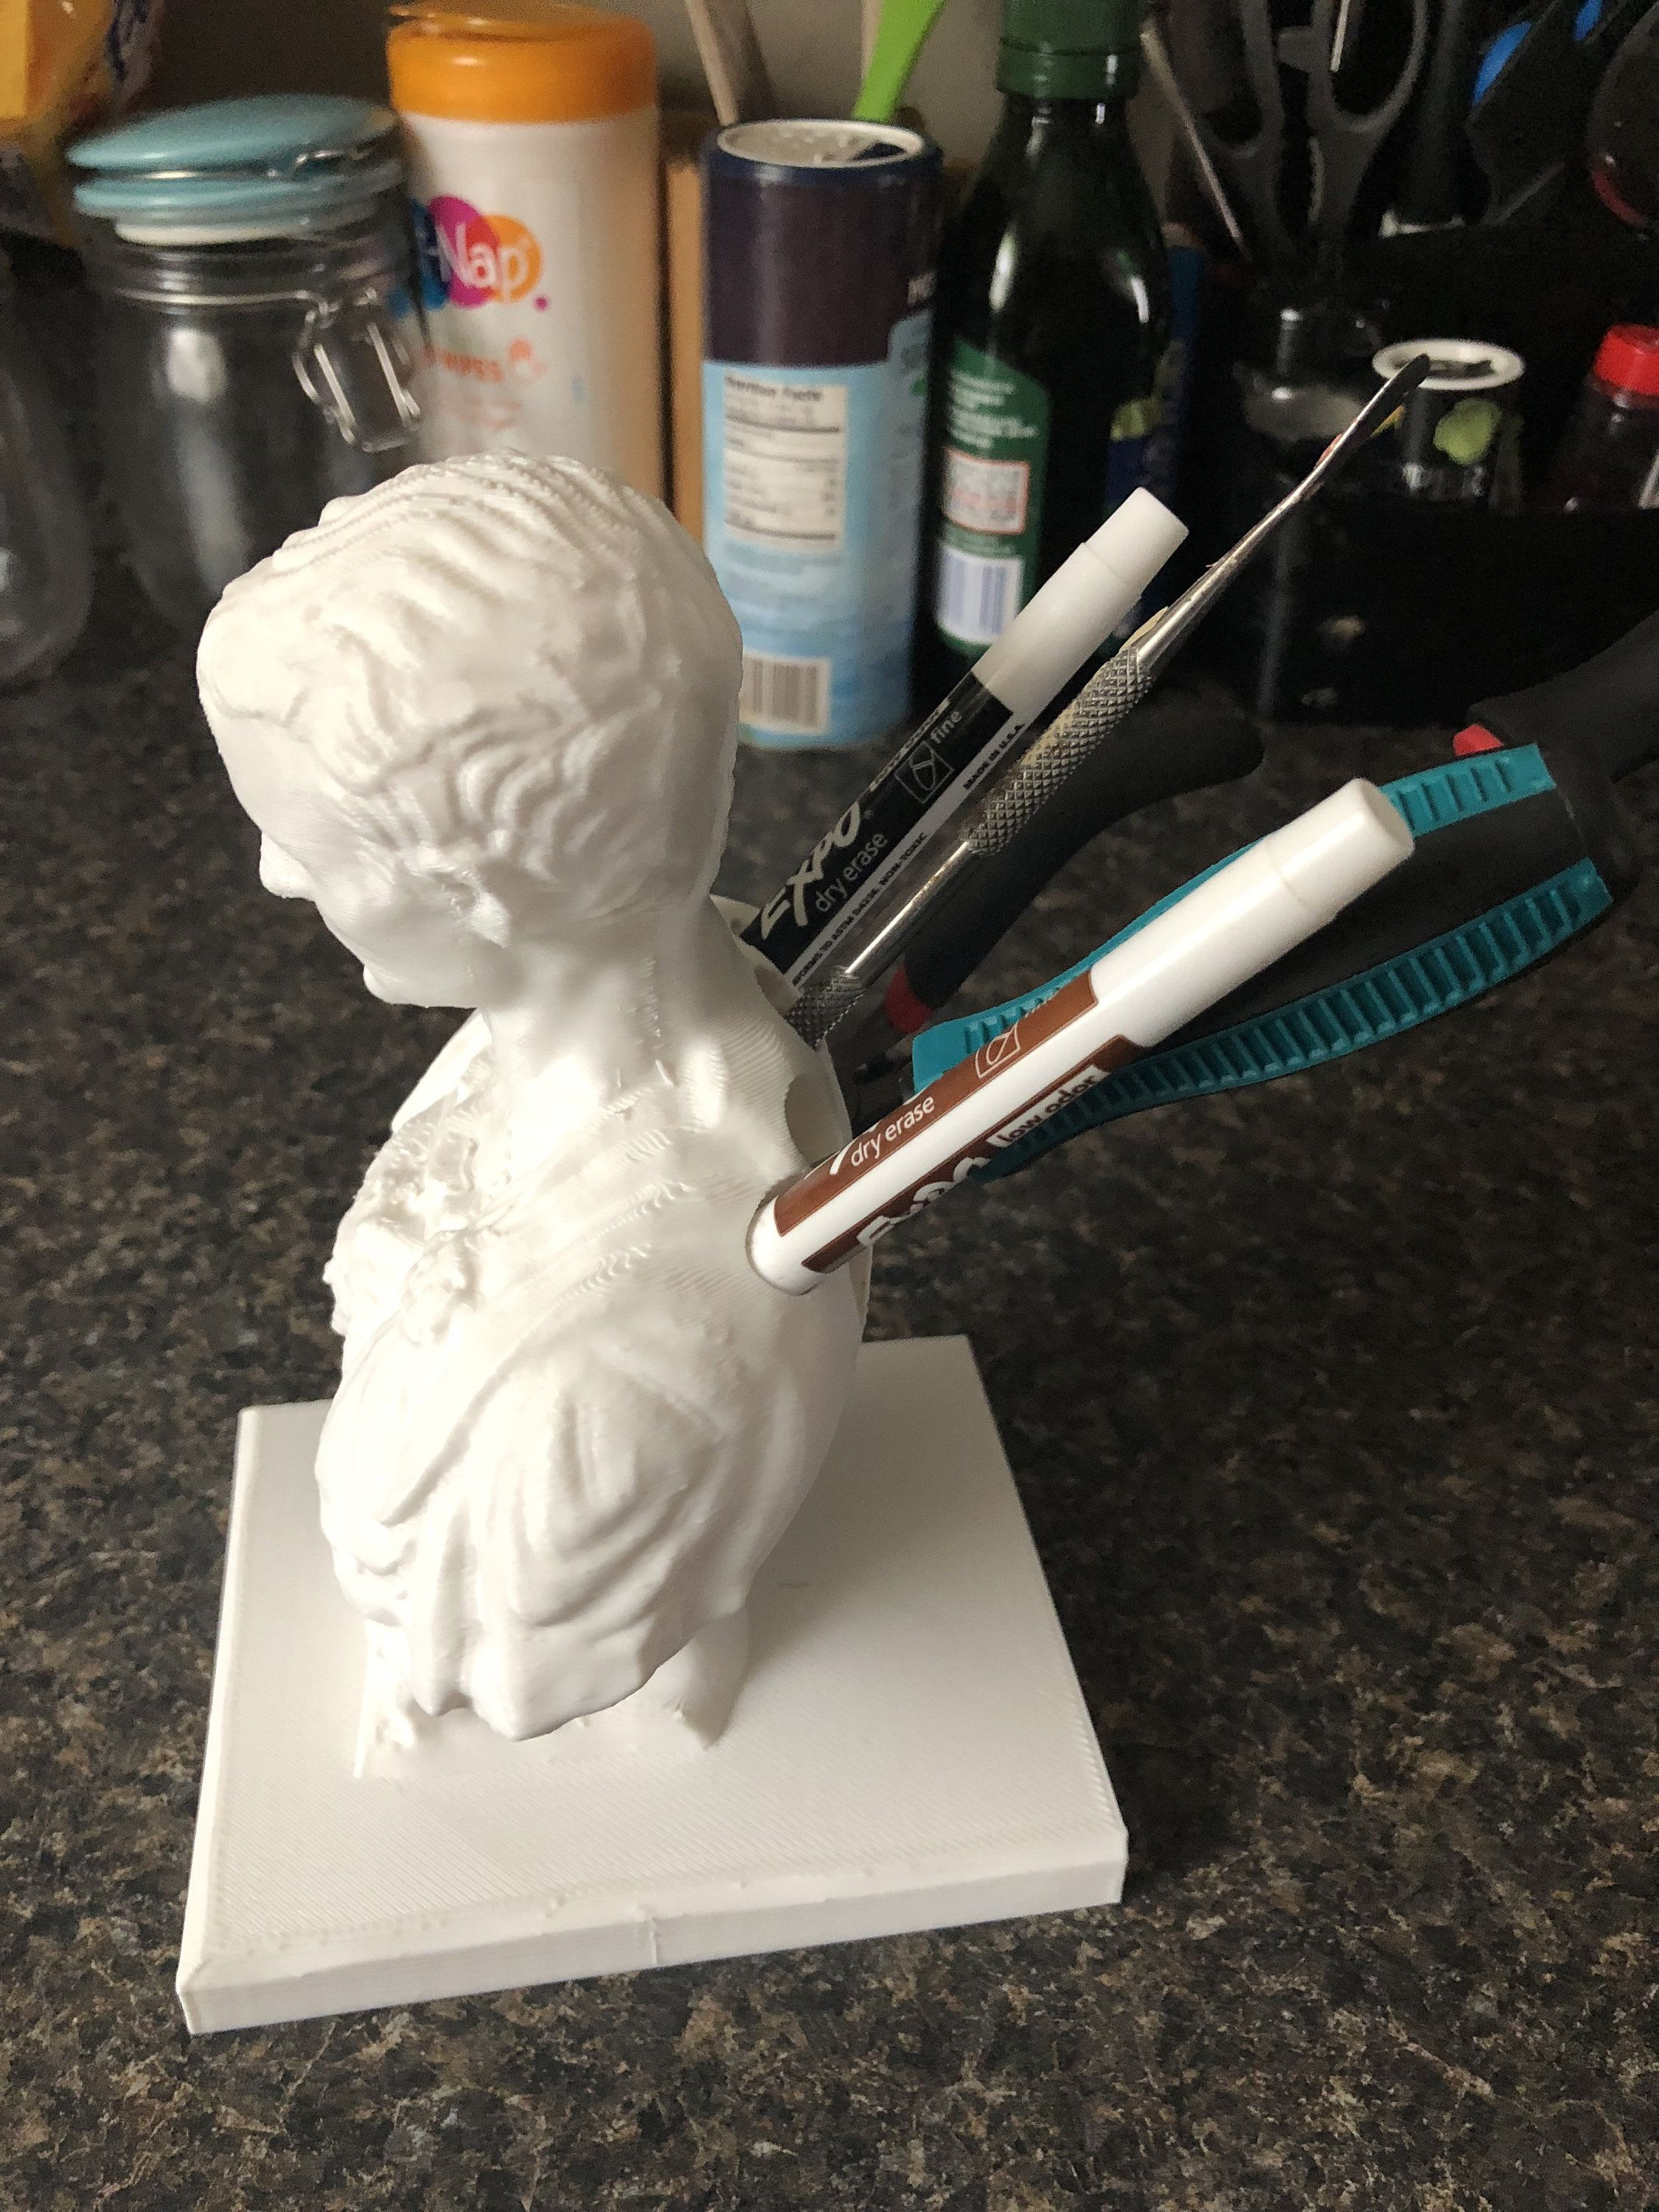 Julius Caesar Pencil Holder Glamorous Julius Caesar Pencil Holder  Pen Holder  Apple Pencil Holder Inspiration